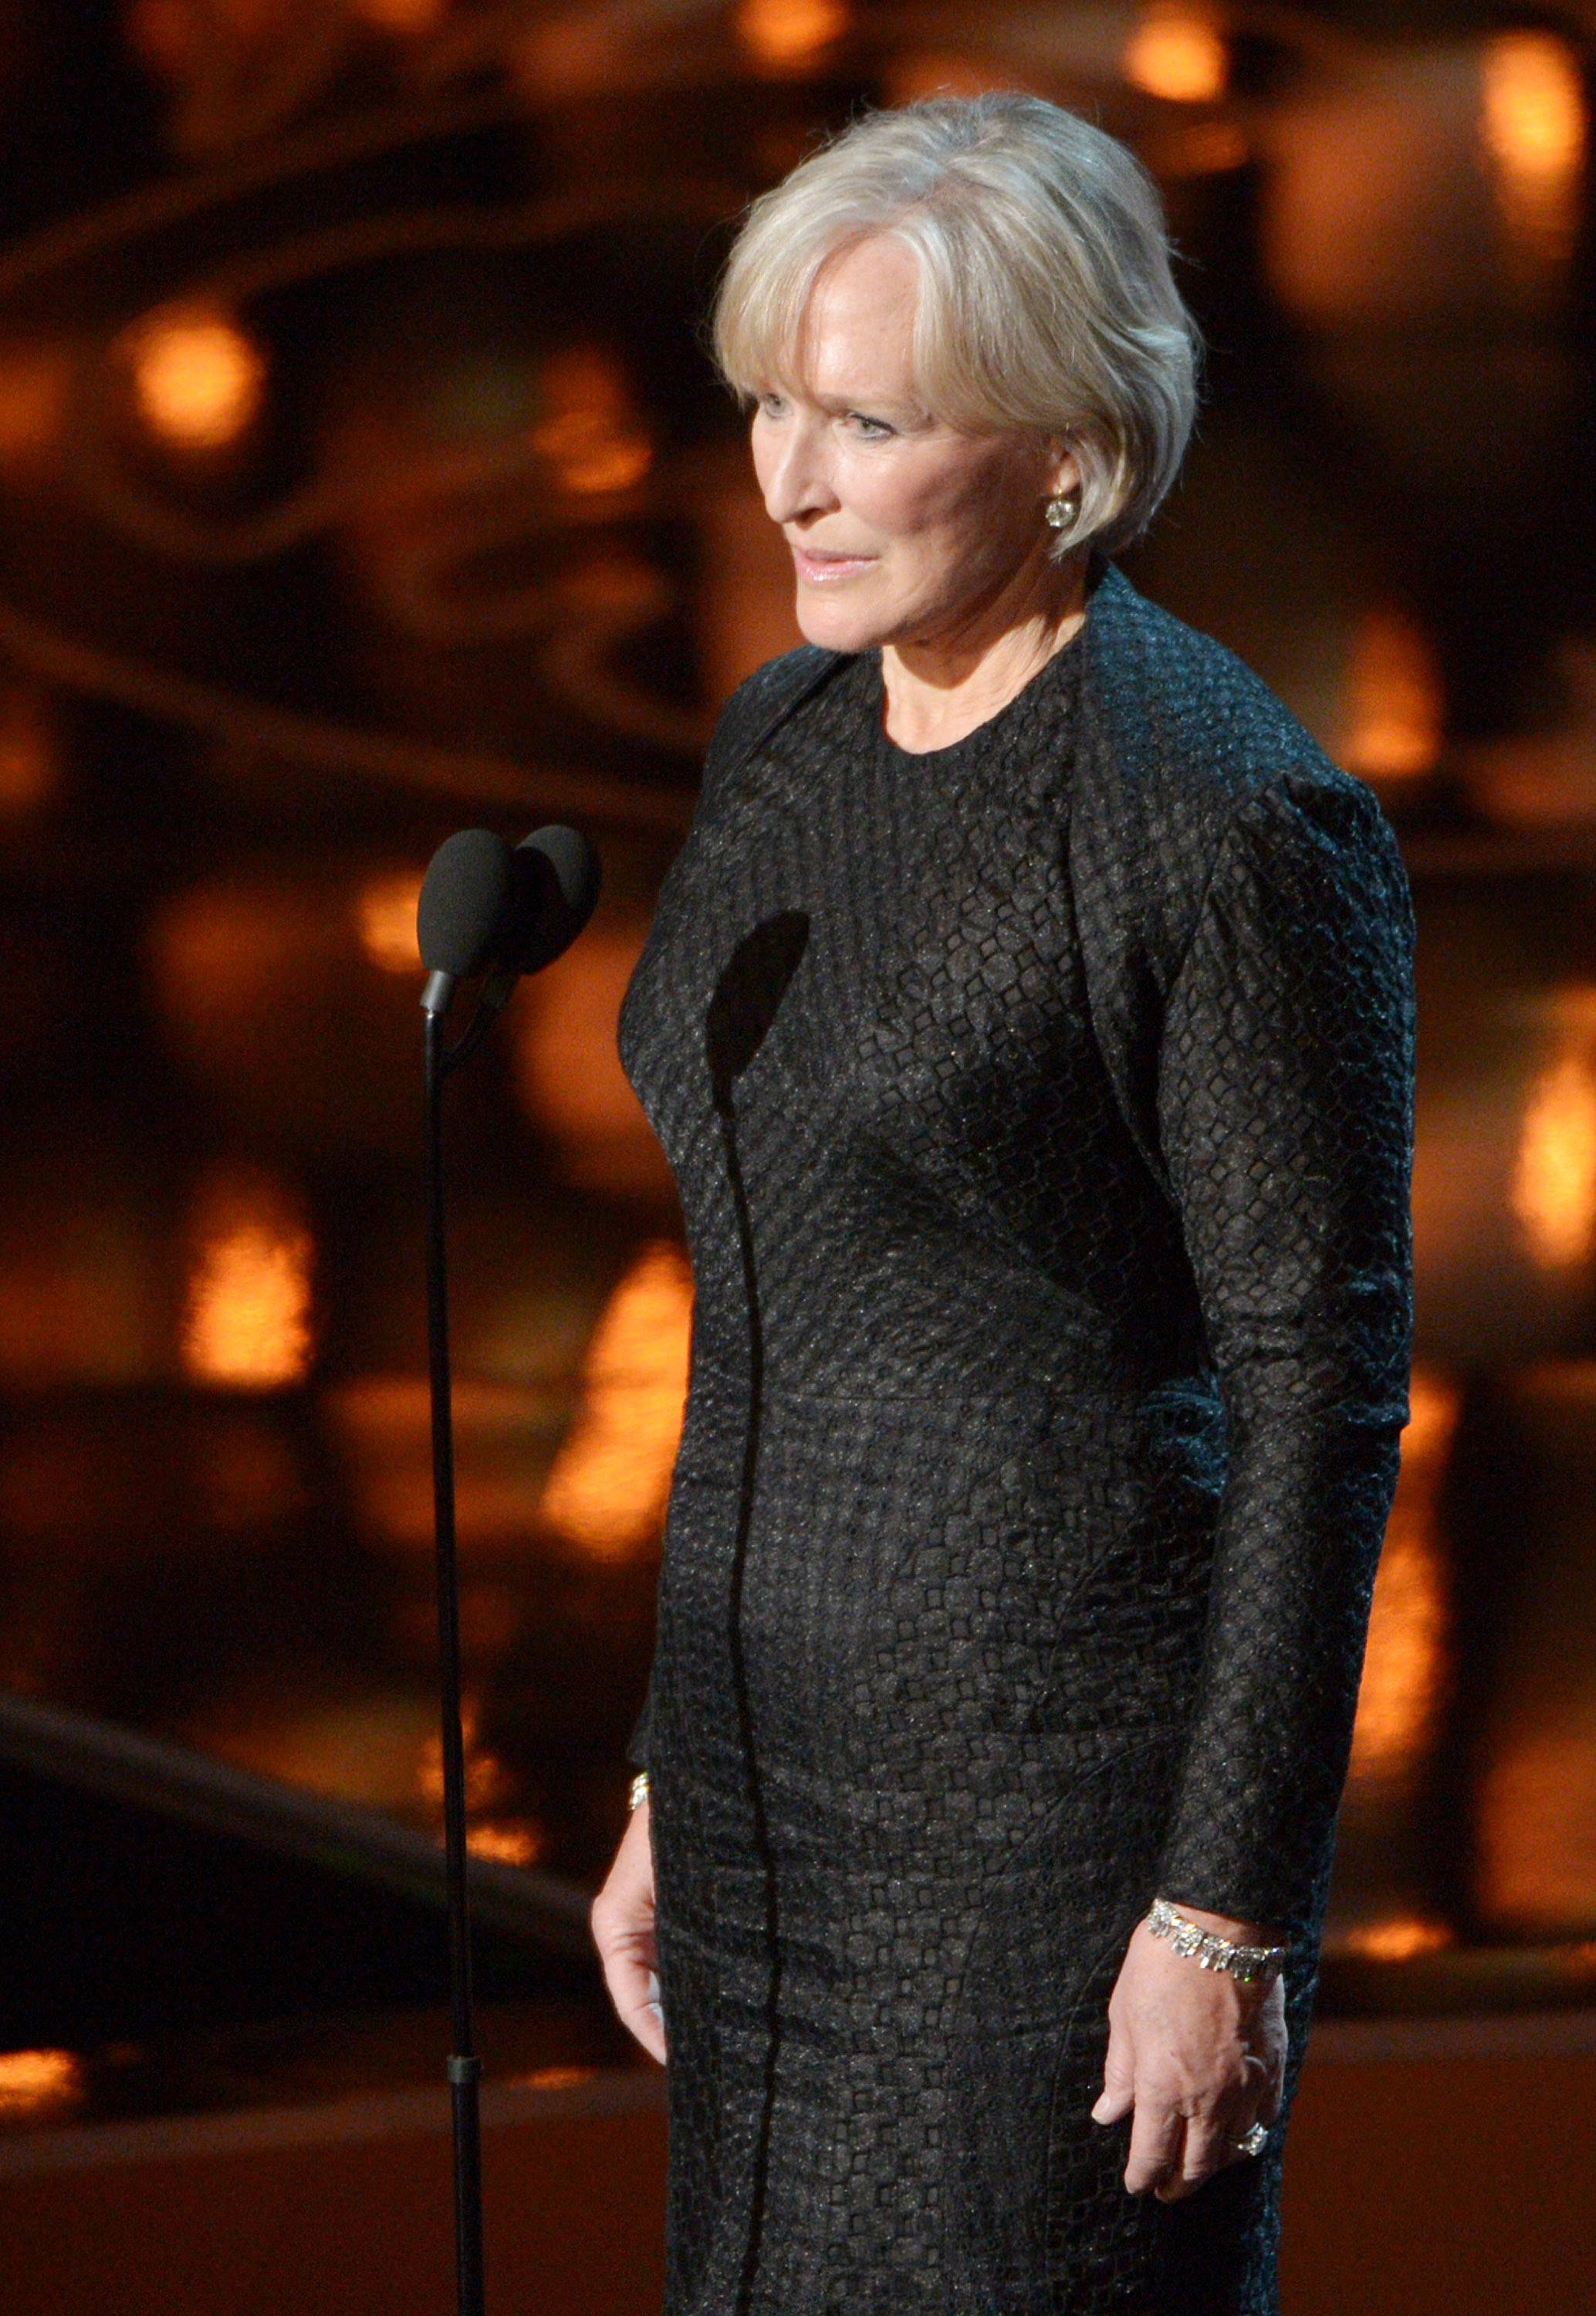 Glenn Close speaks during the Oscars.